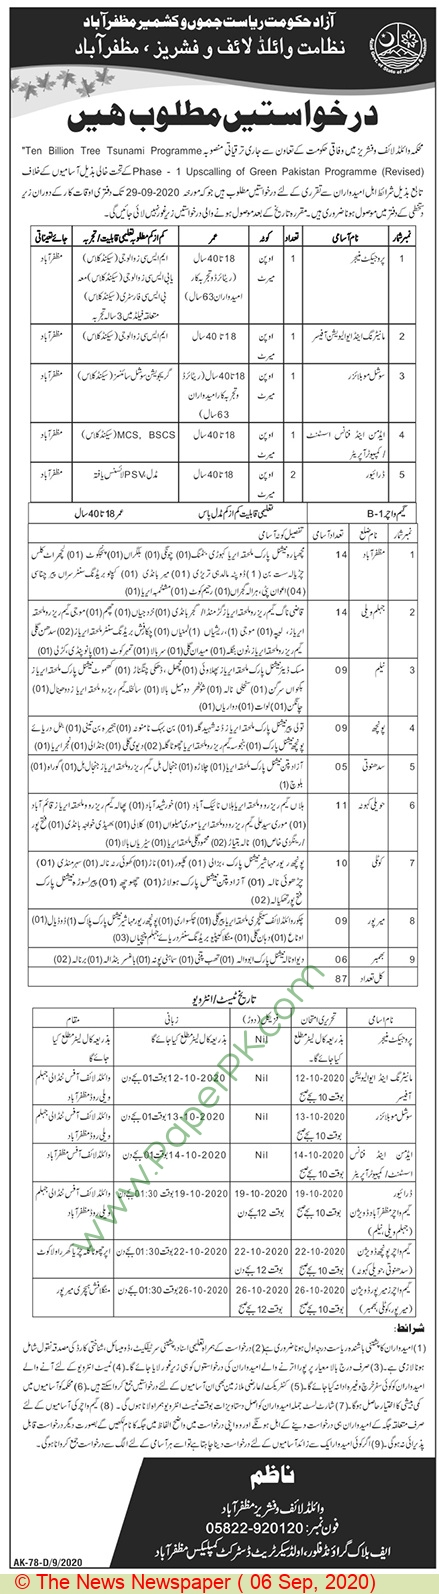 Wildlife & Fisheries Department jobs newspaper ad for Project Manager in Muzaffarabad on 2020-09-06